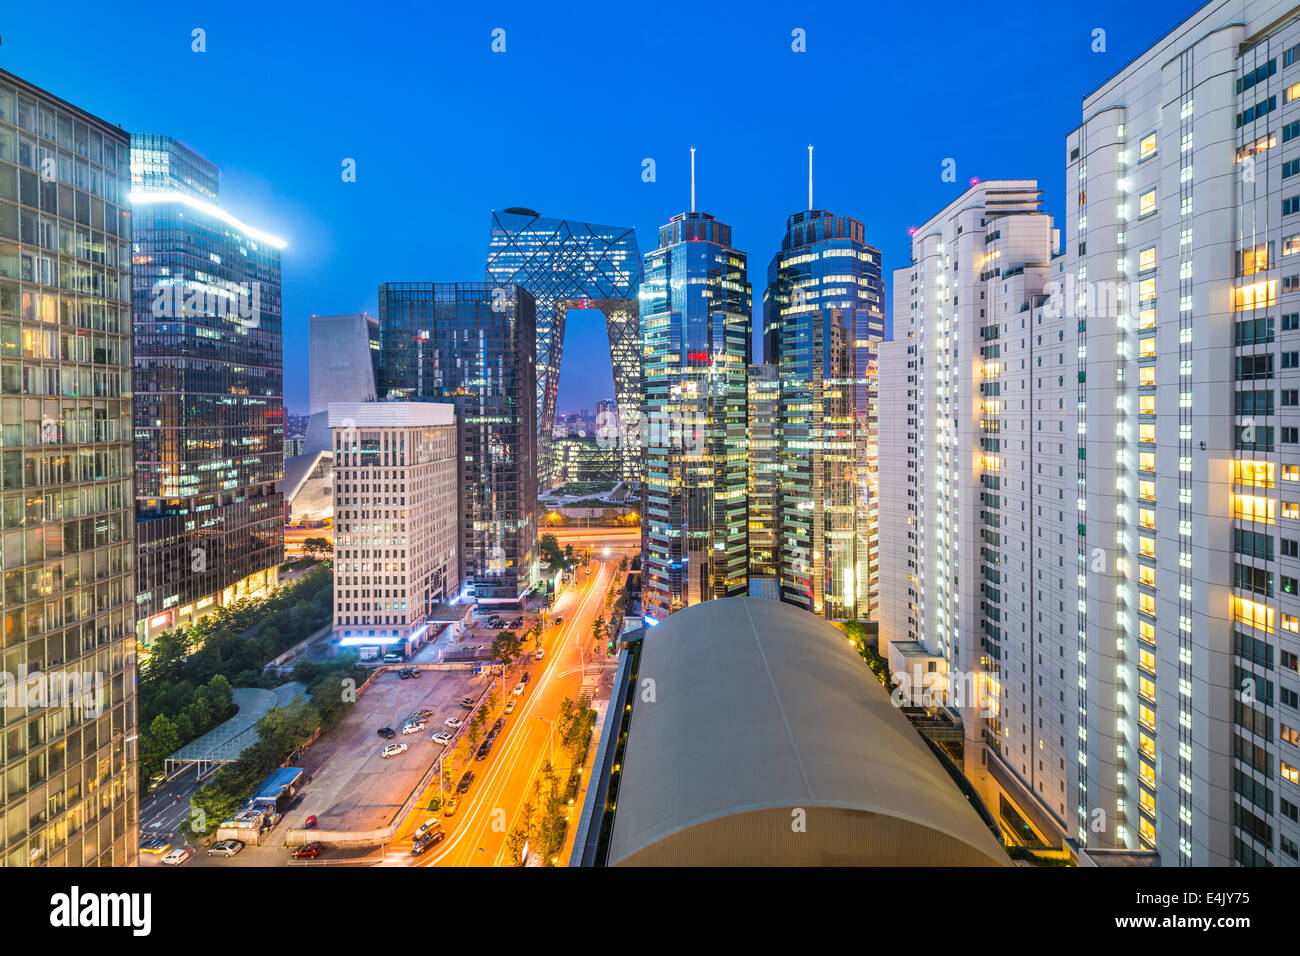 Beijing, China cityscape in the central business district. - Stock Image